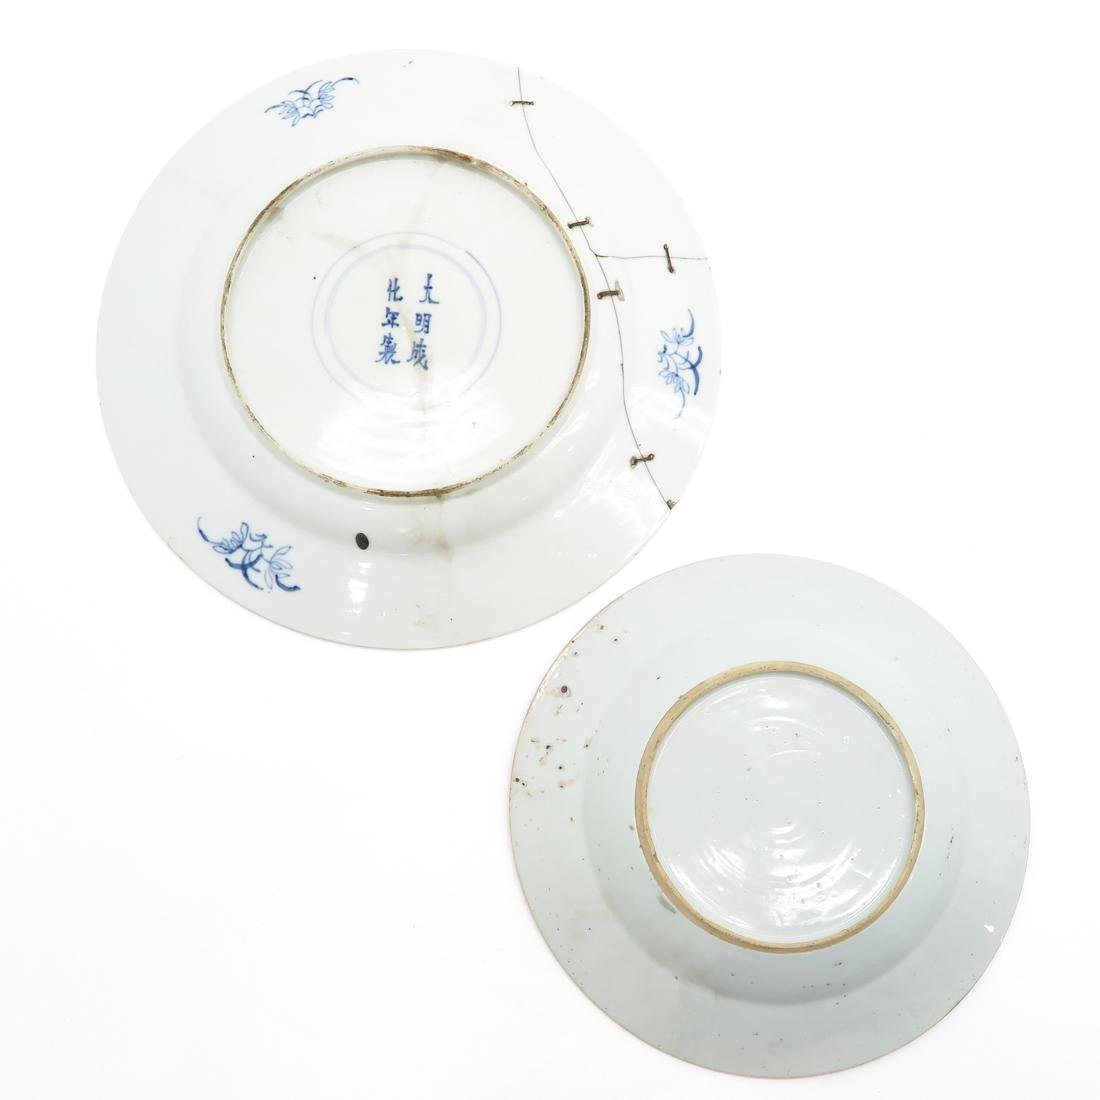 Lot of 2 Plates - 2